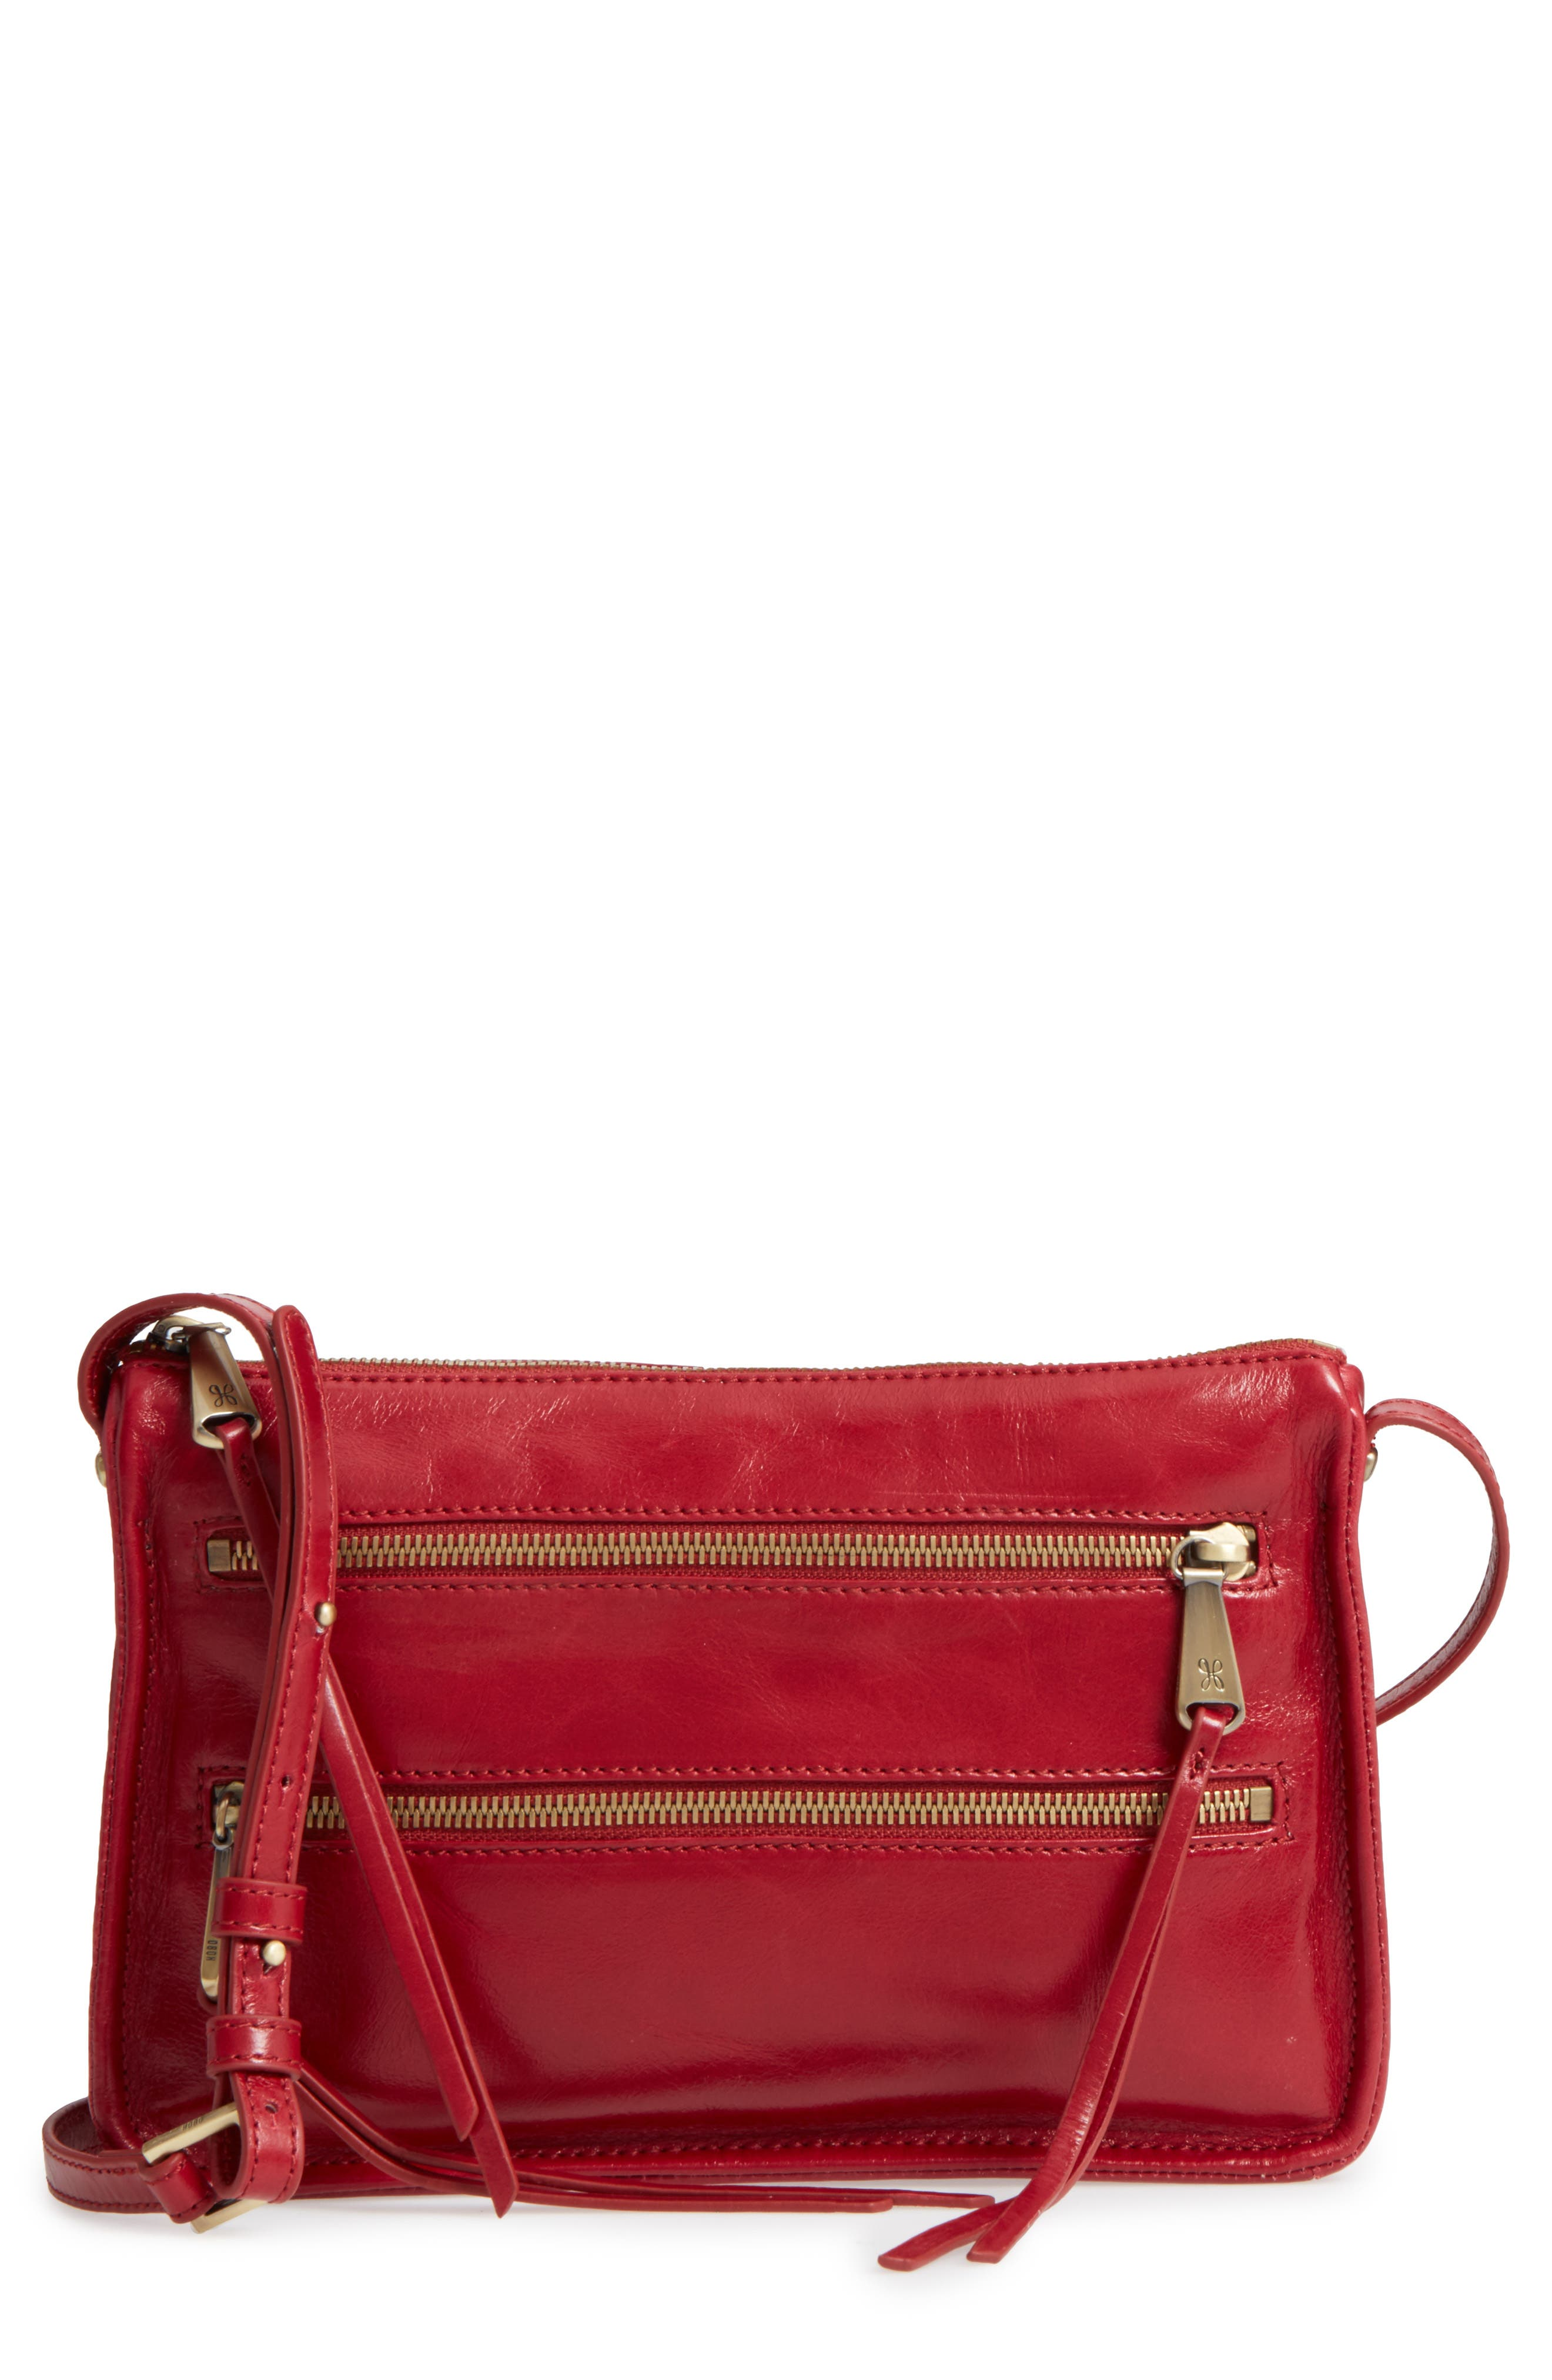 Alternate Image 1 Selected - Hobo Mission Leather Crossbody Bag